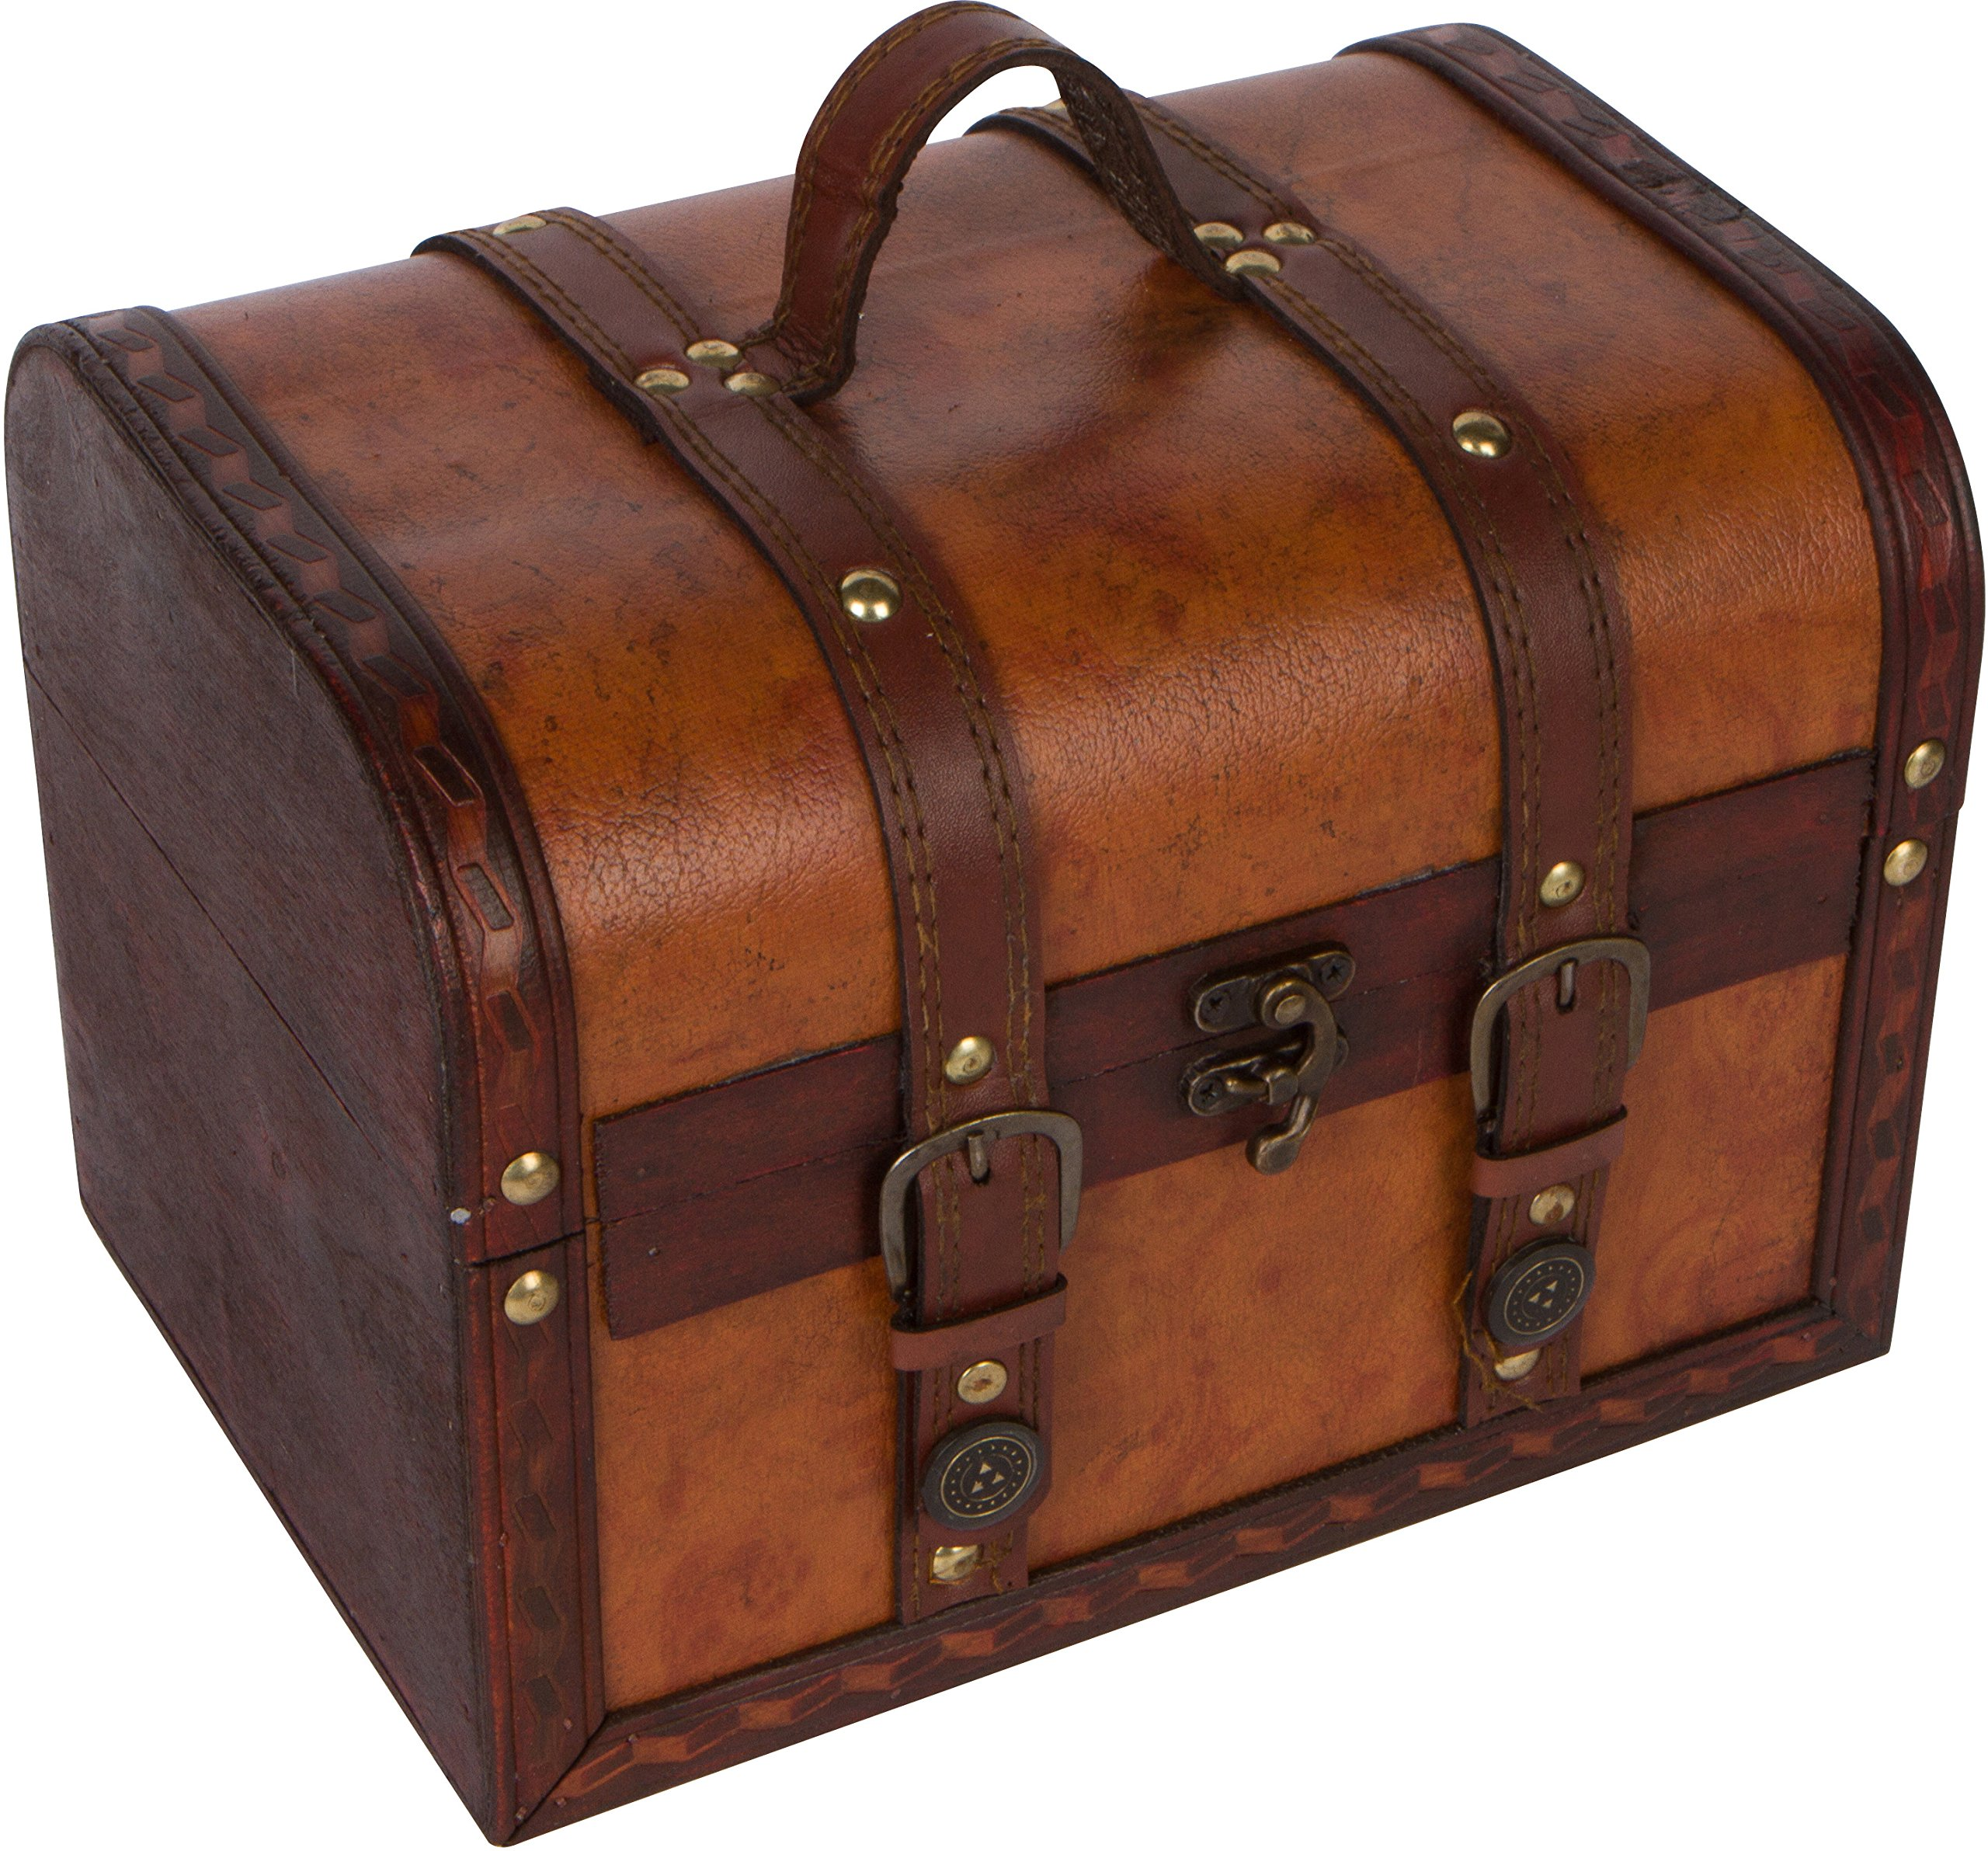 Trademark Innovations 10'' Wood and Leather Decorative Chest by Trademark Innovations